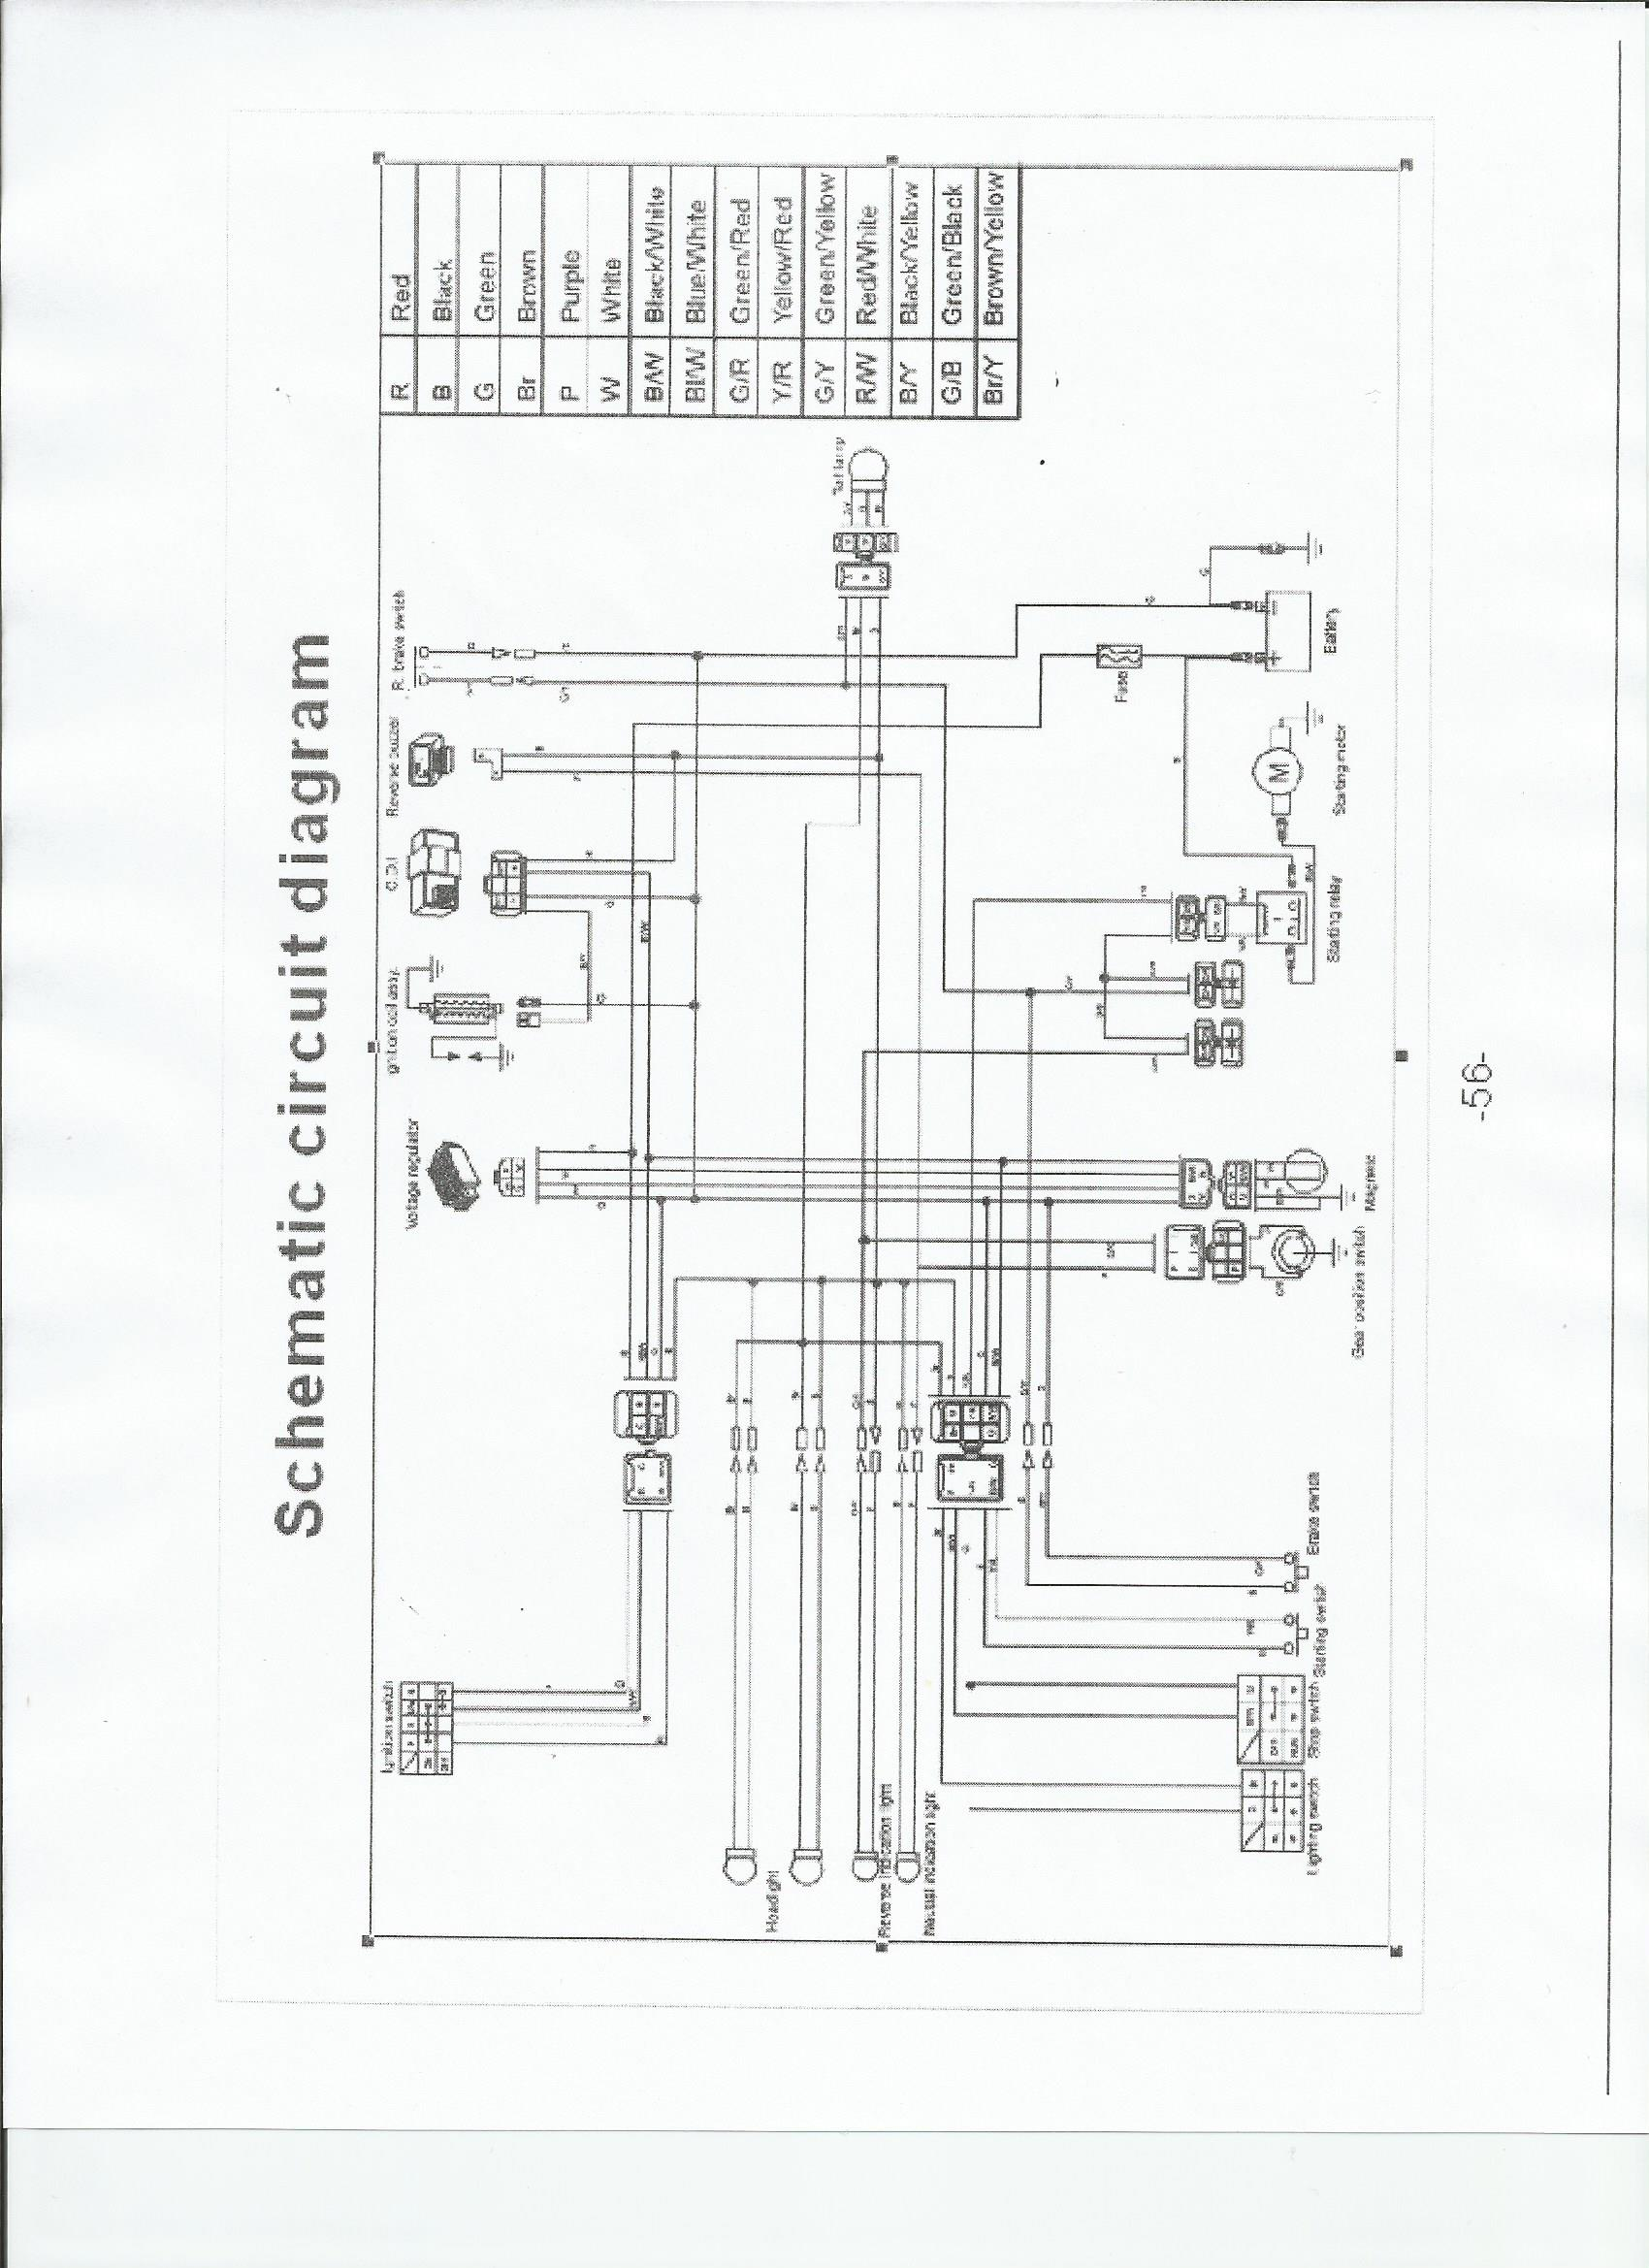 jcl atv wiring diagrams wiring diagram blogatv wiring schematic wiring diagram priv jcl atv wiring diagrams [ 1700 x 2338 Pixel ]